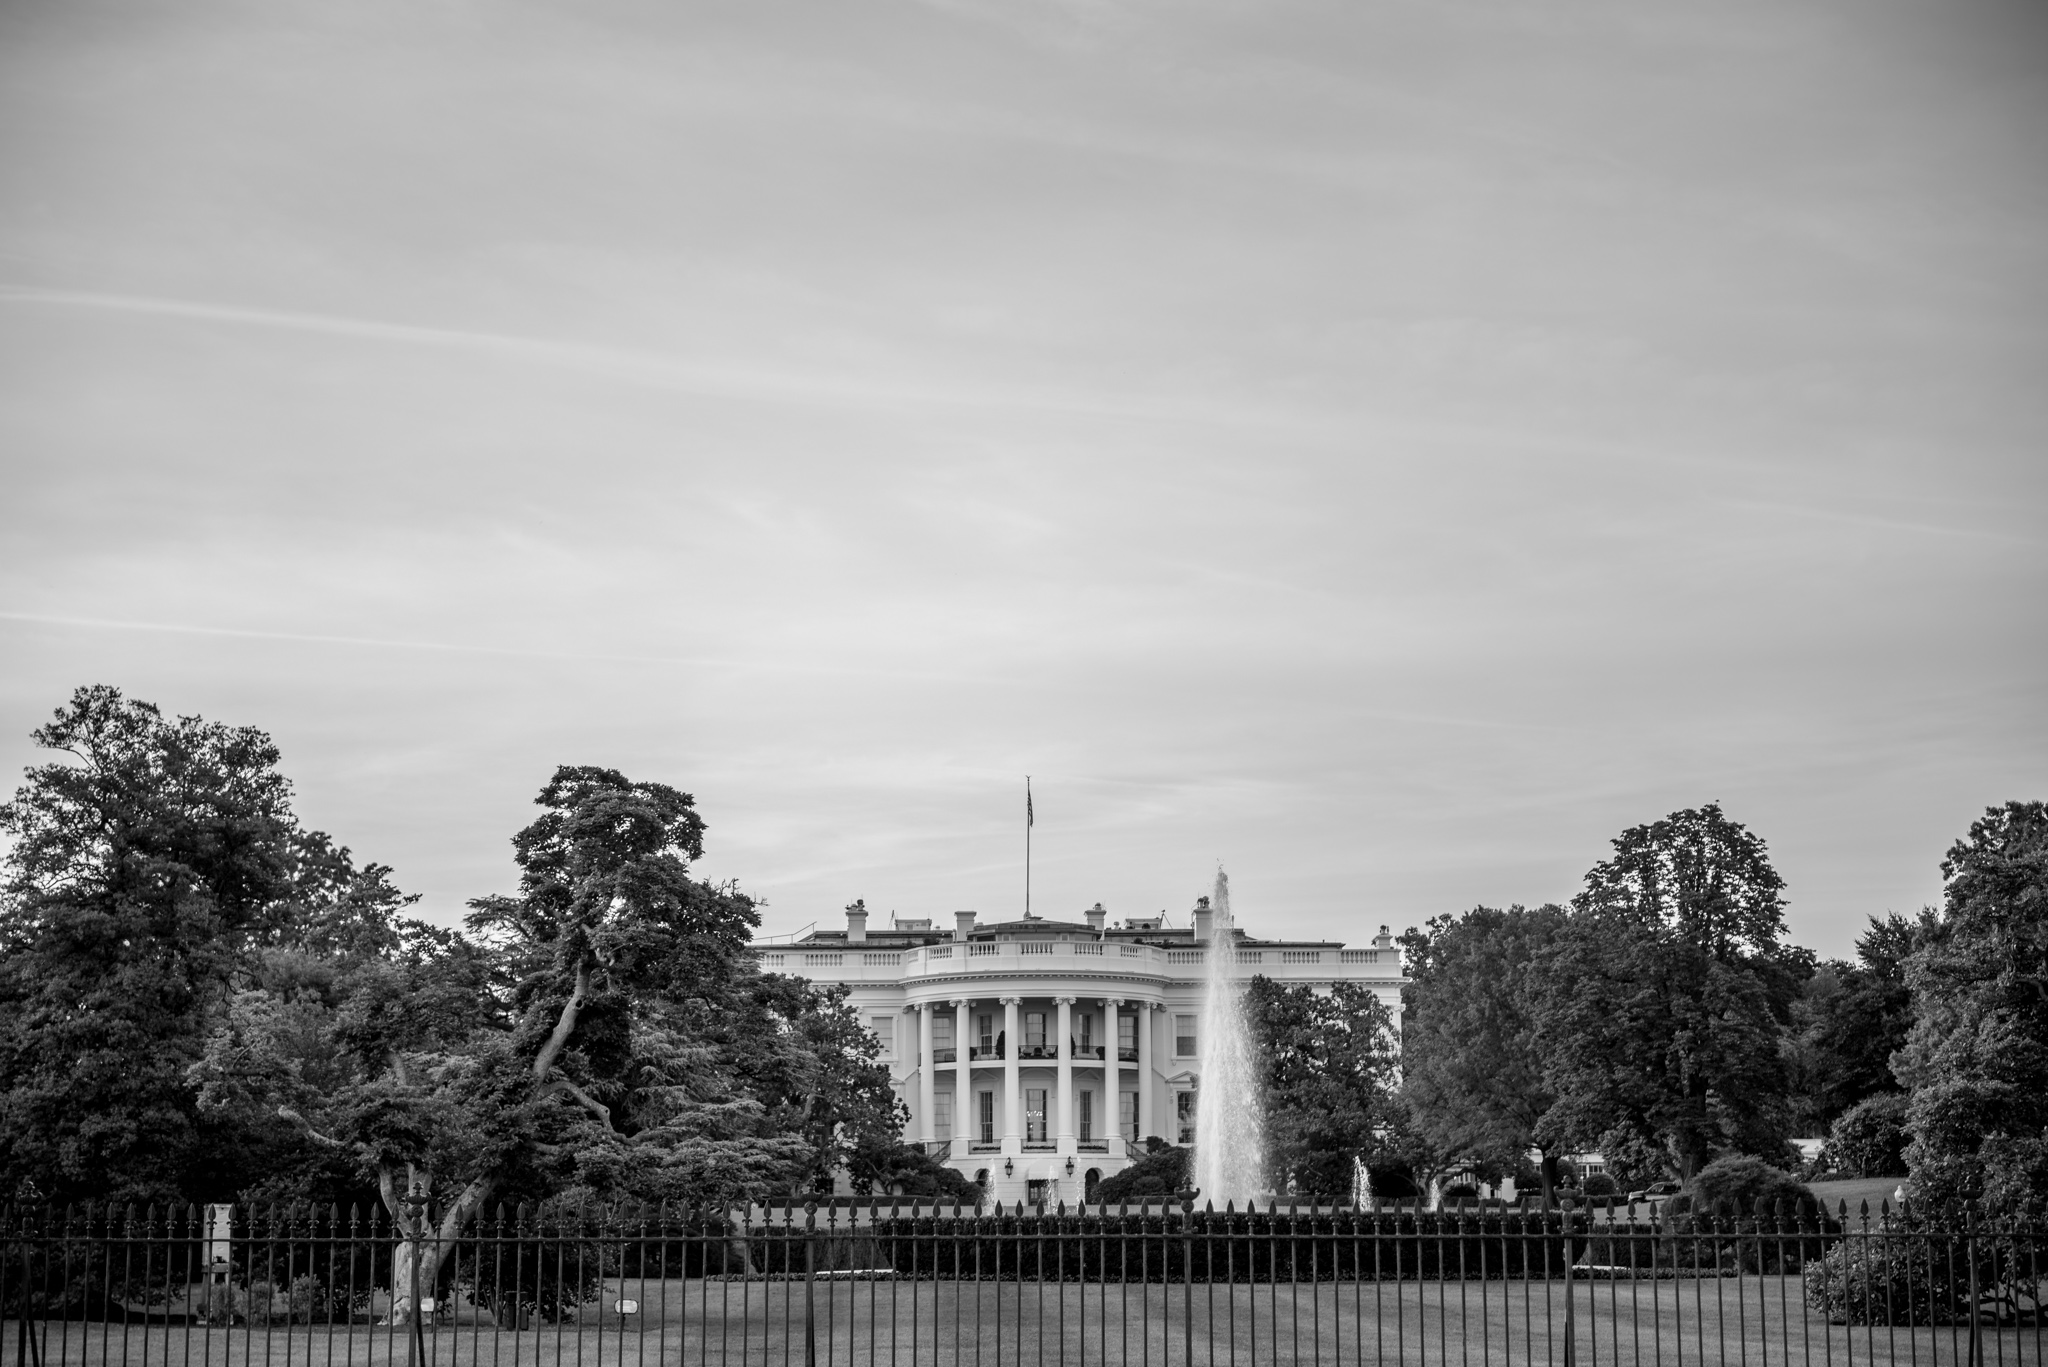 The back of the White House, USA